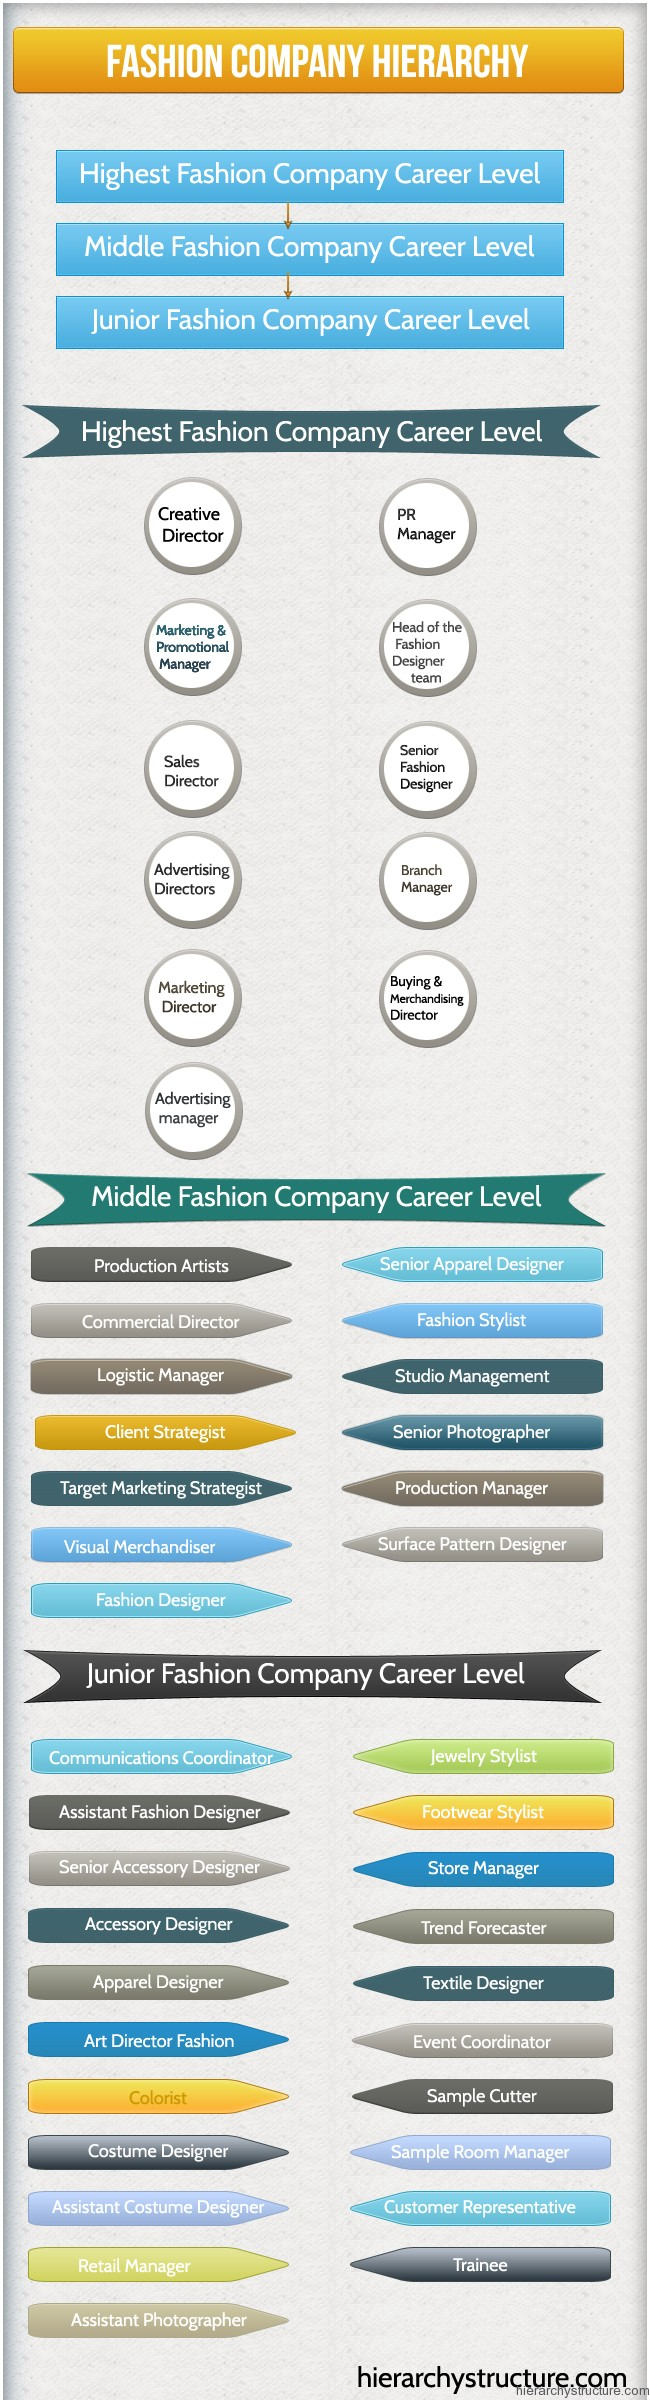 List of positions in a fashion company